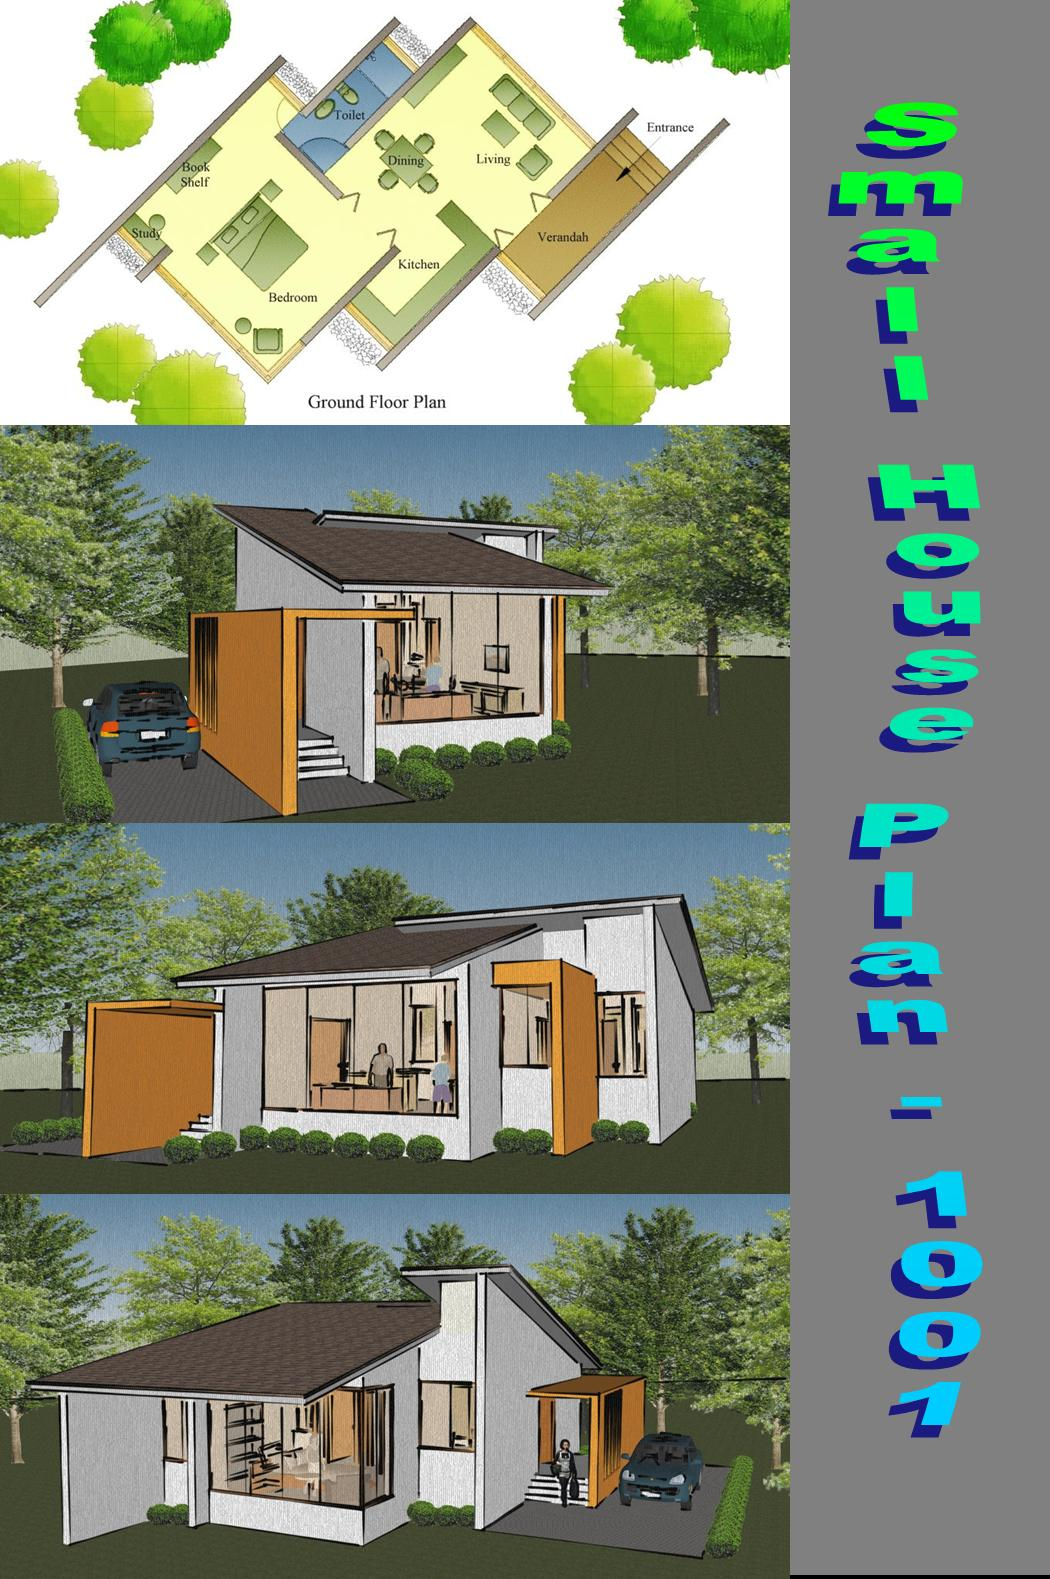 Home plans in india 5 best small home plans from for Best house plans in india